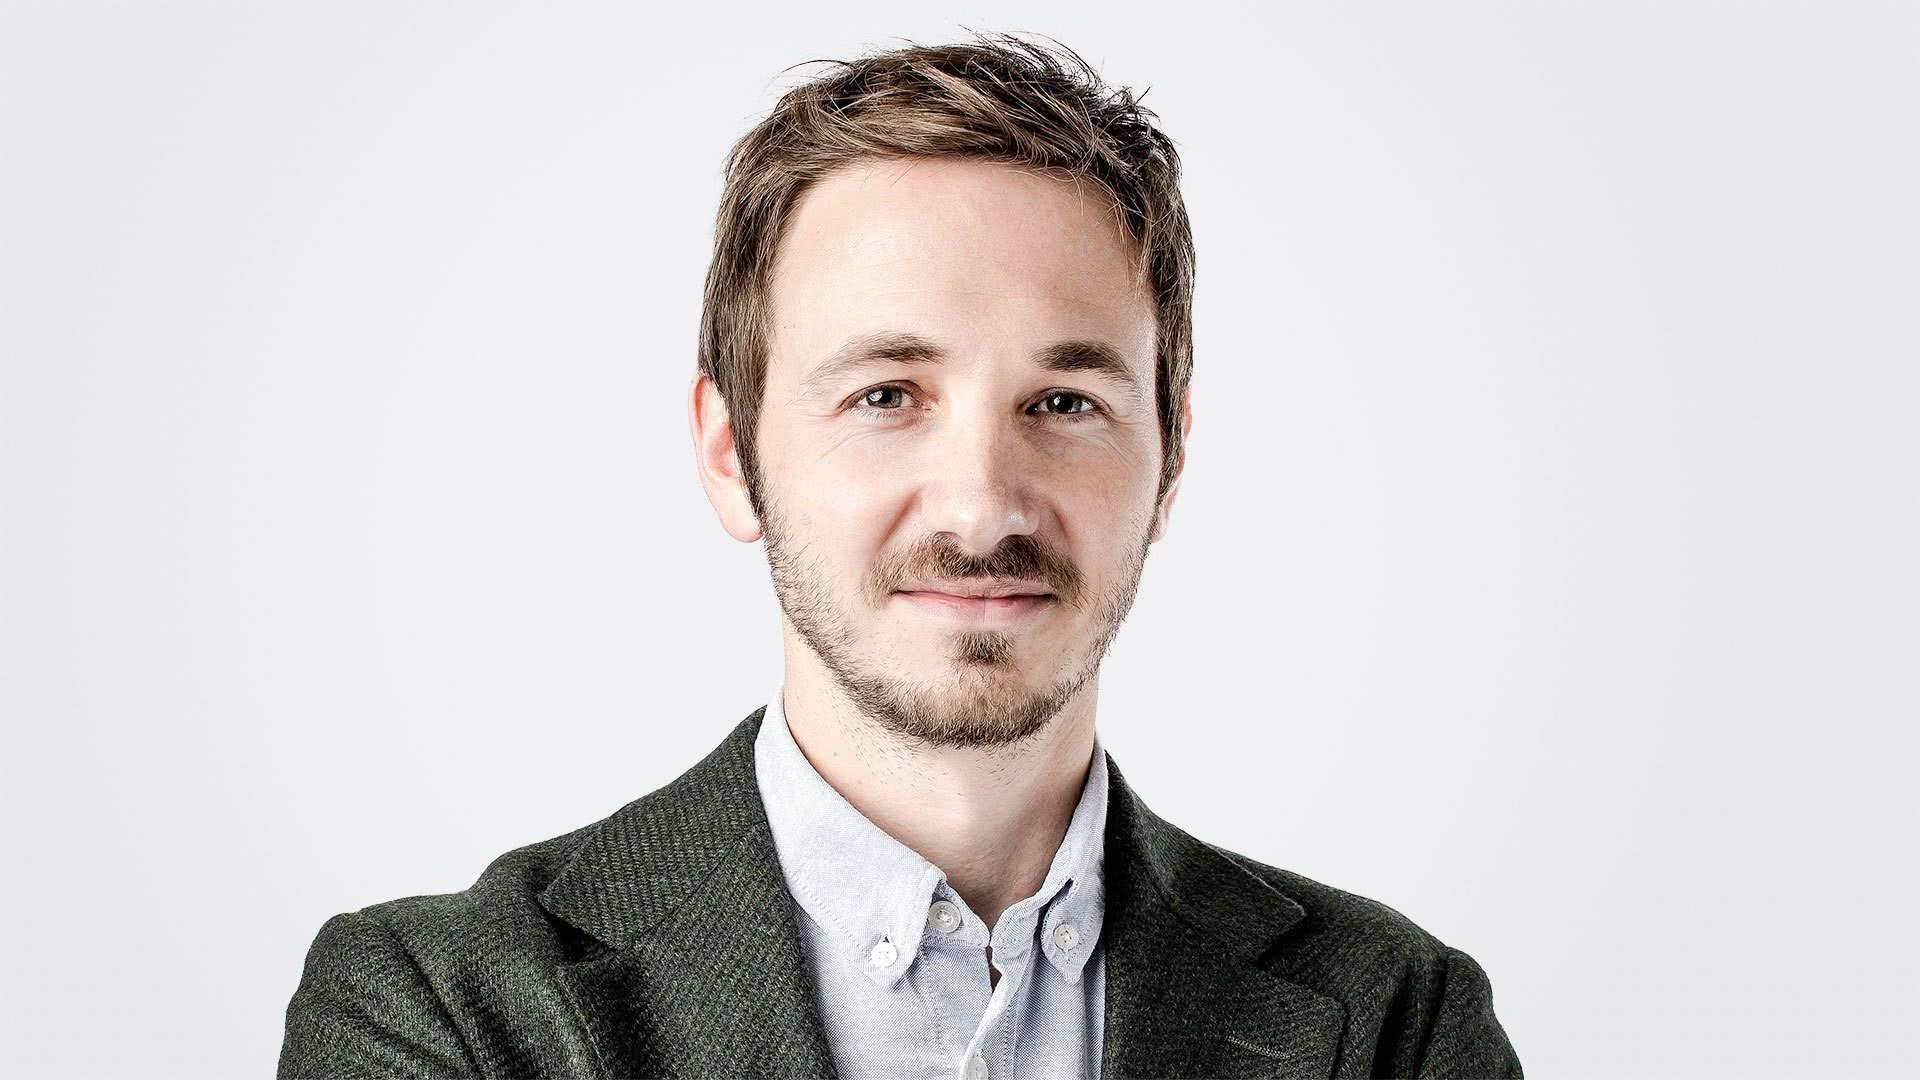 Foto: Christoph Emch, Unit Lead Digital Marketing bei Farner